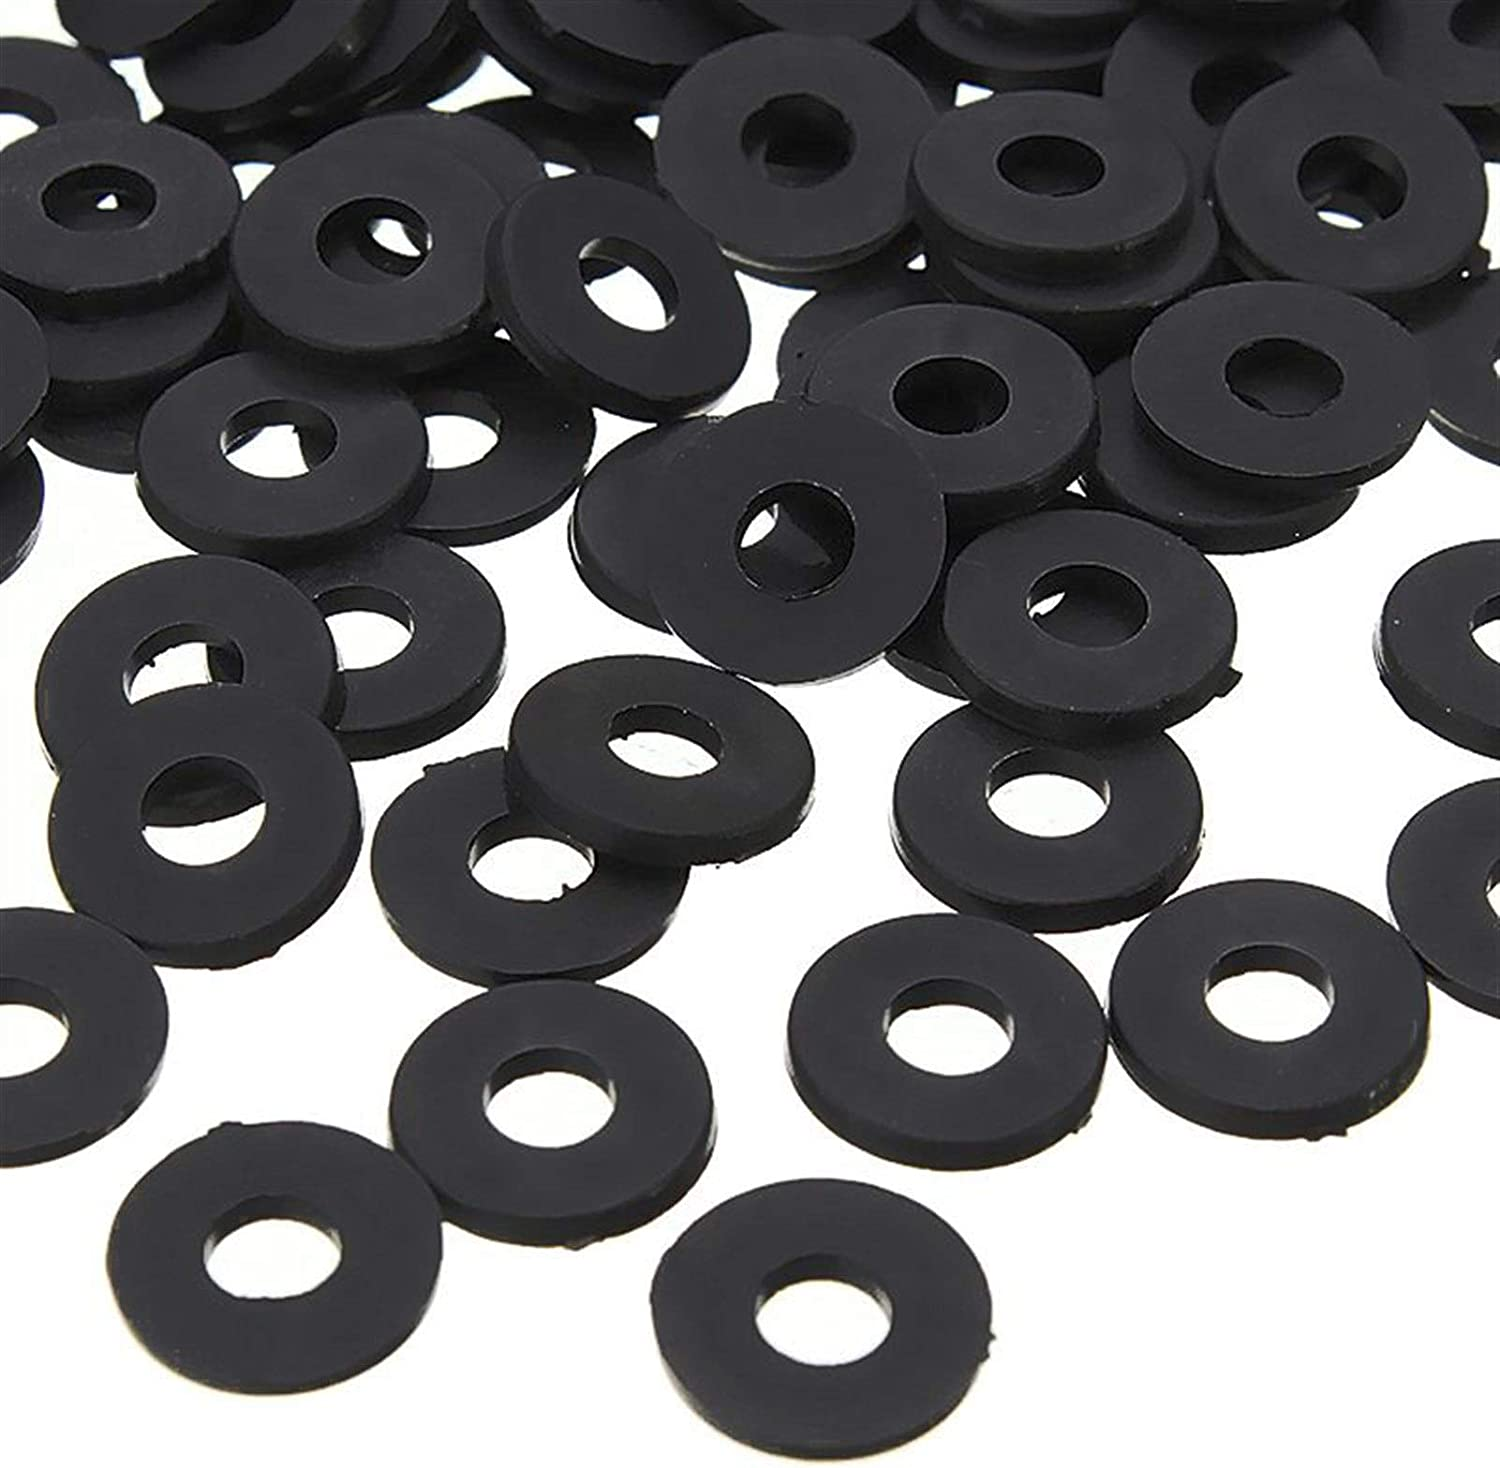 Repair Parts M2 x 5mm x 1mm Nylon Flat Insulating Washers Gaskets Spacers Black 200PCS Gaskets